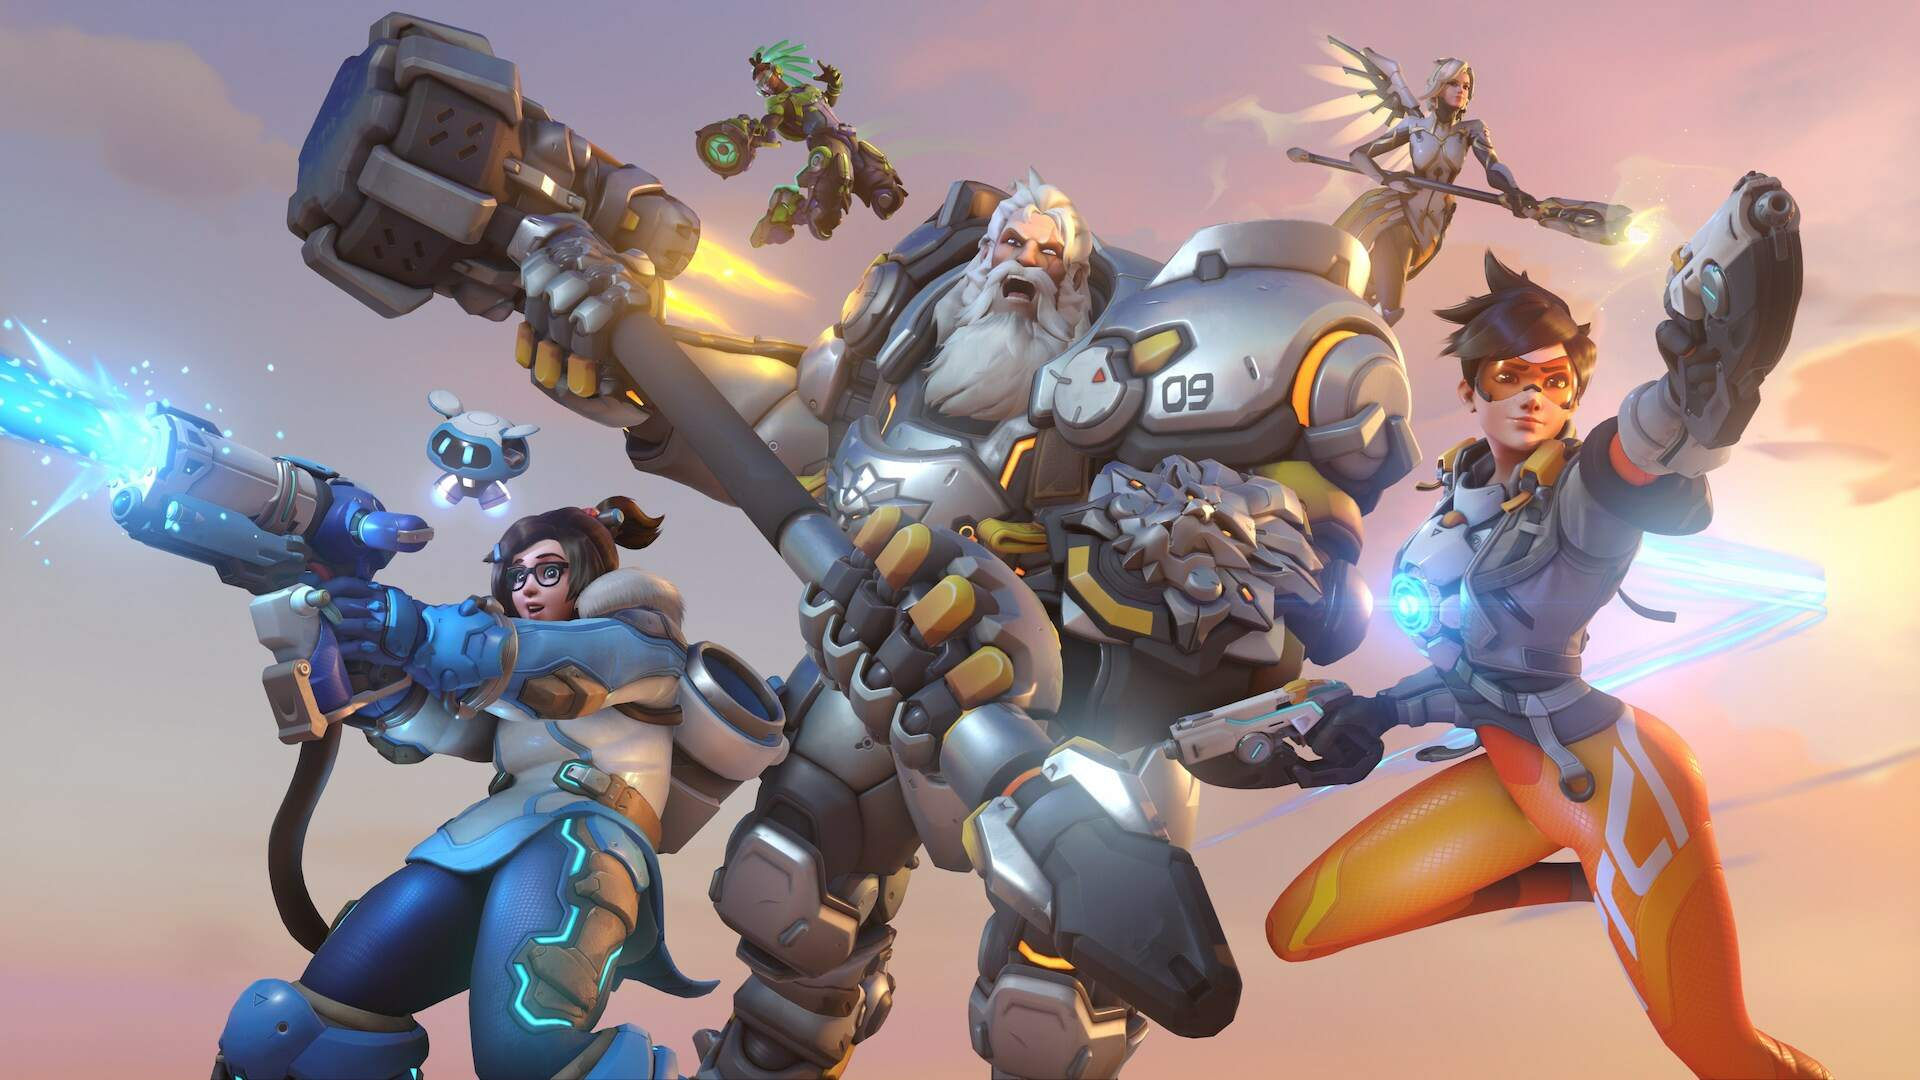 The Writer Who Helped Shape Overwatch's Lore is Leaving Blizzard